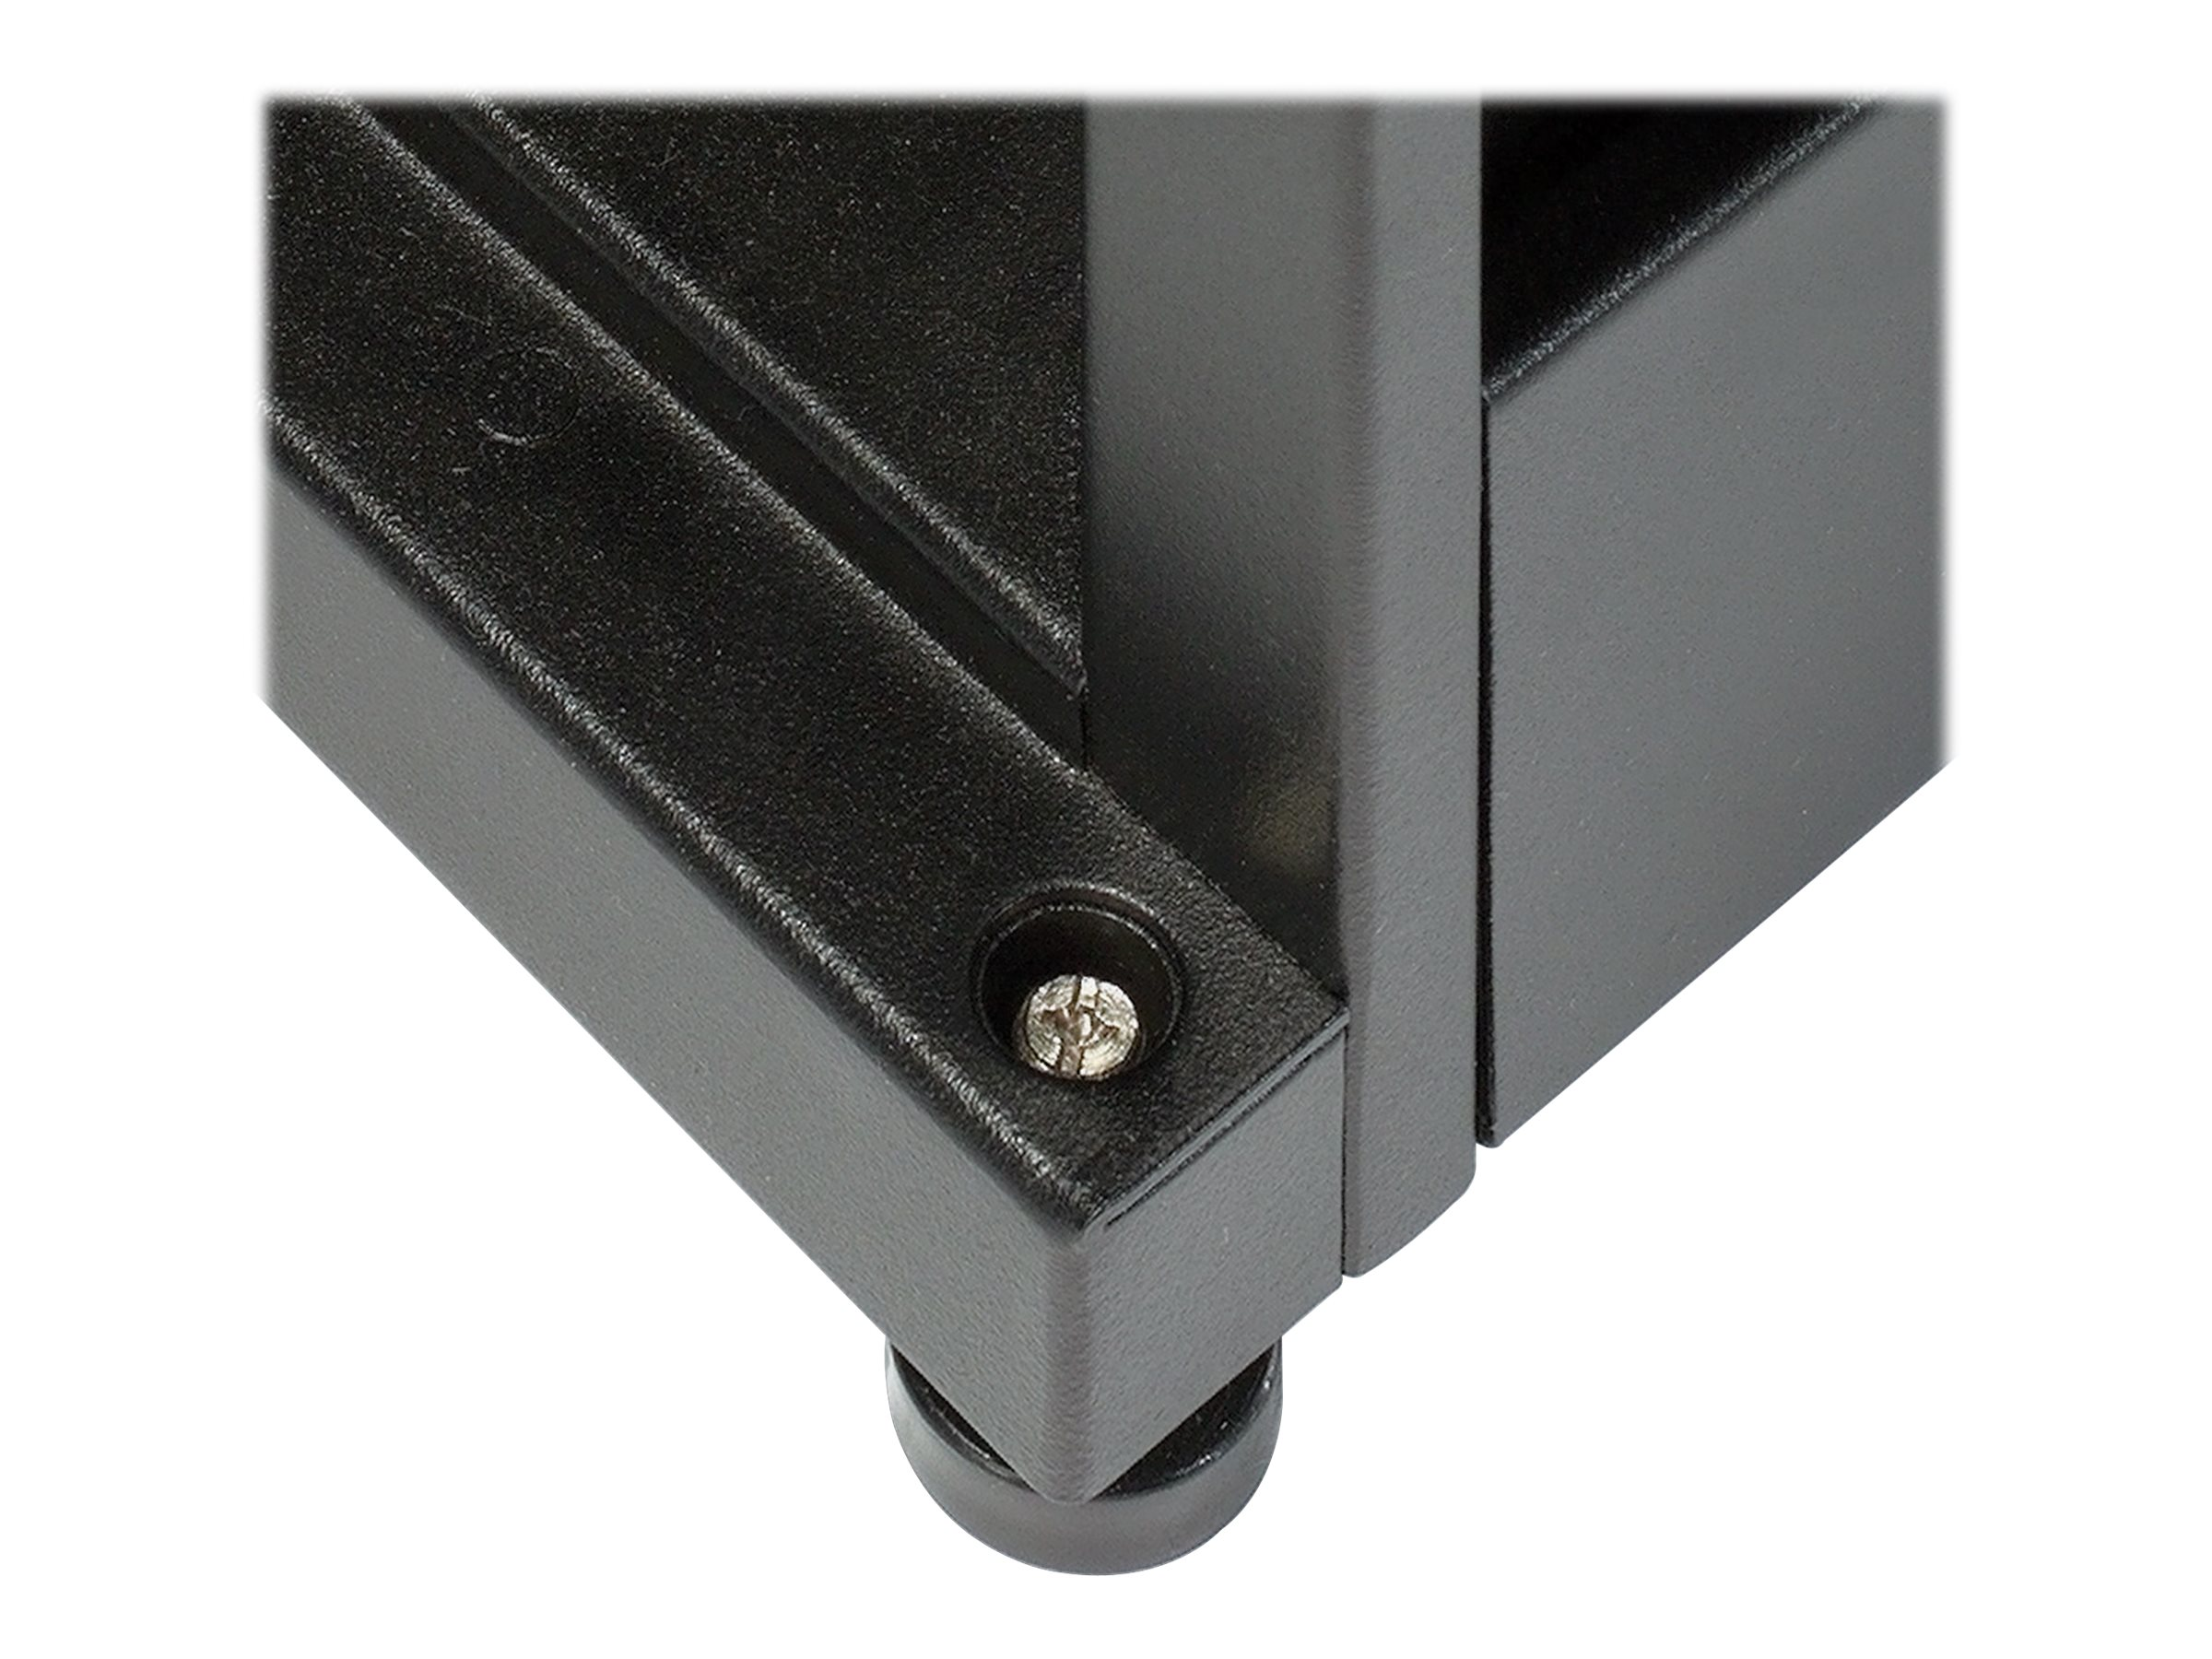 APC NetShelter SX 42U Enclosure, 600mm Wide x 1070mm Deep, Sides, Black, Instant Rebate - Save $75, AR3100